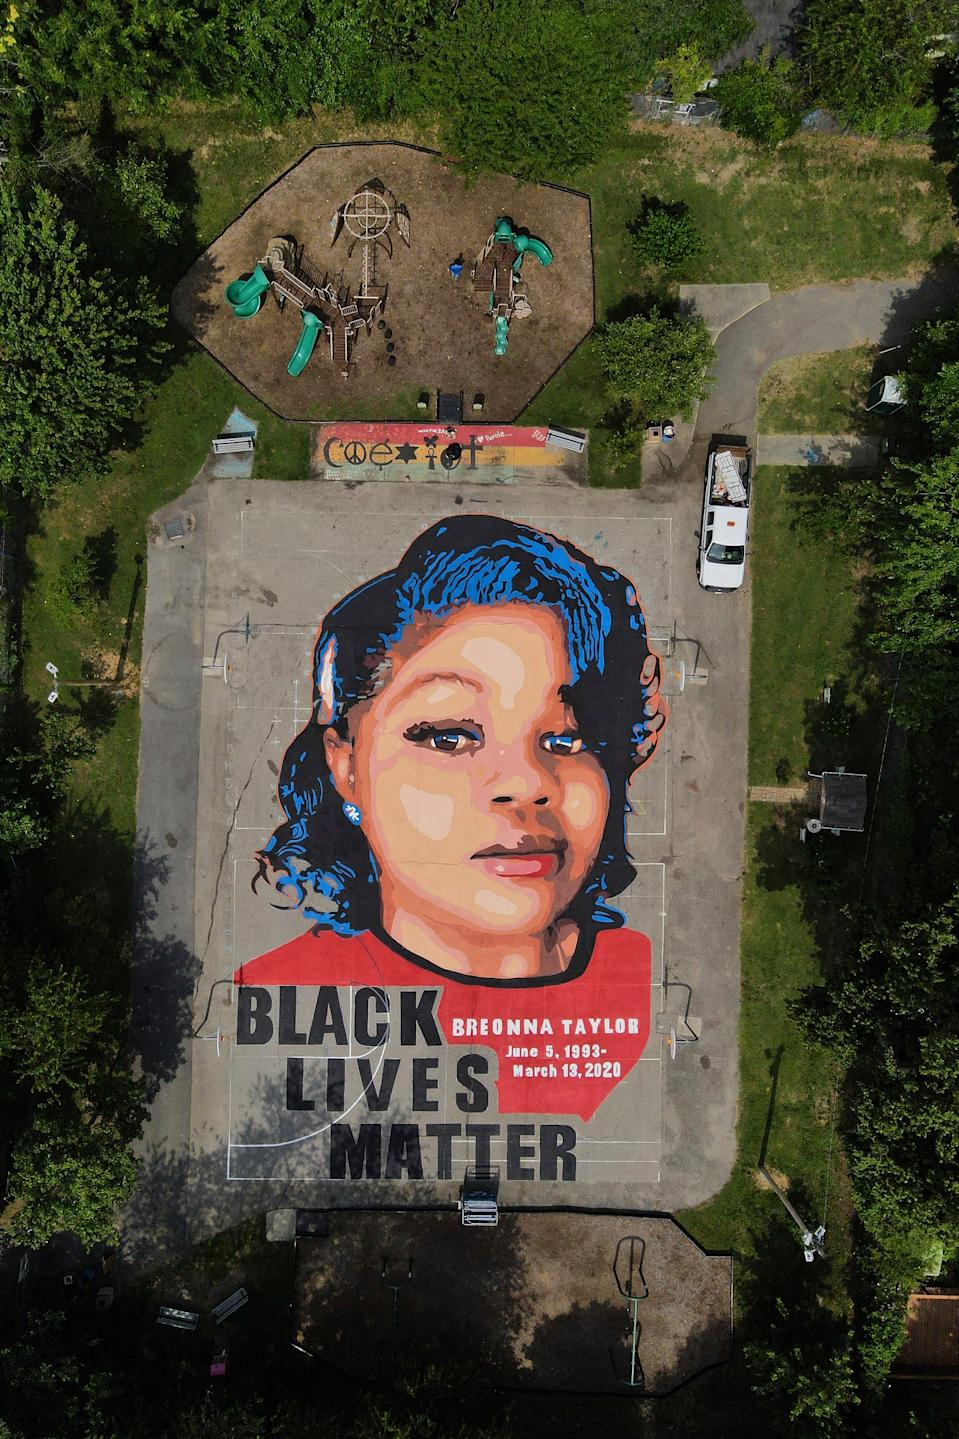 A mural depicting Breonna Taylor on July 6, 2020, in Annapolis, Maryland.